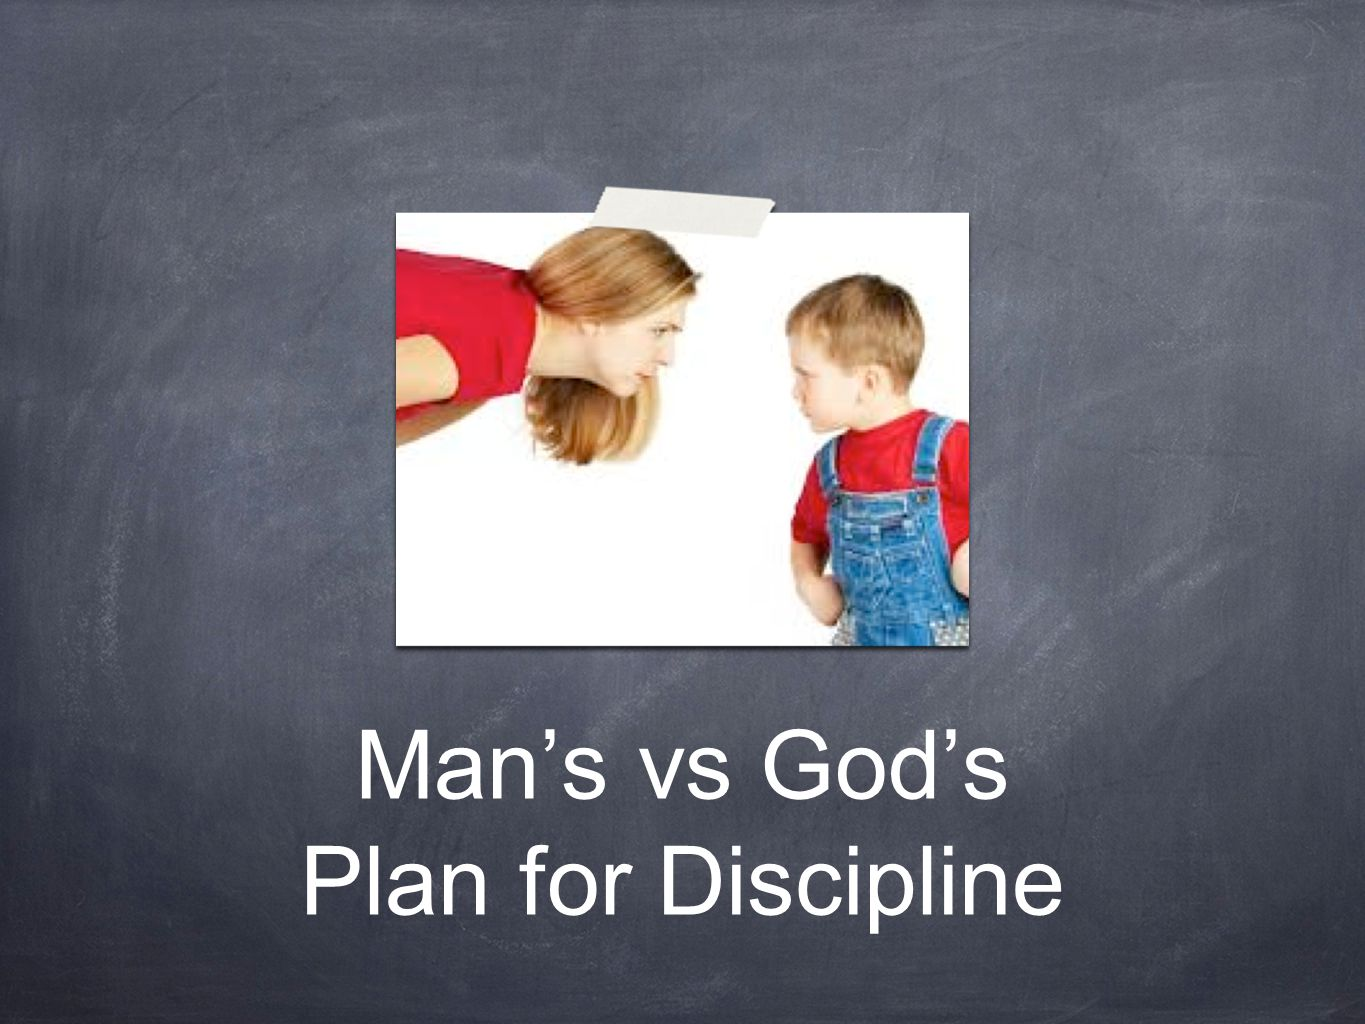 What We Discussed History of modern parental practices Man's Discipline vs God's Discipline How to Raising Godly Children Final Considerations